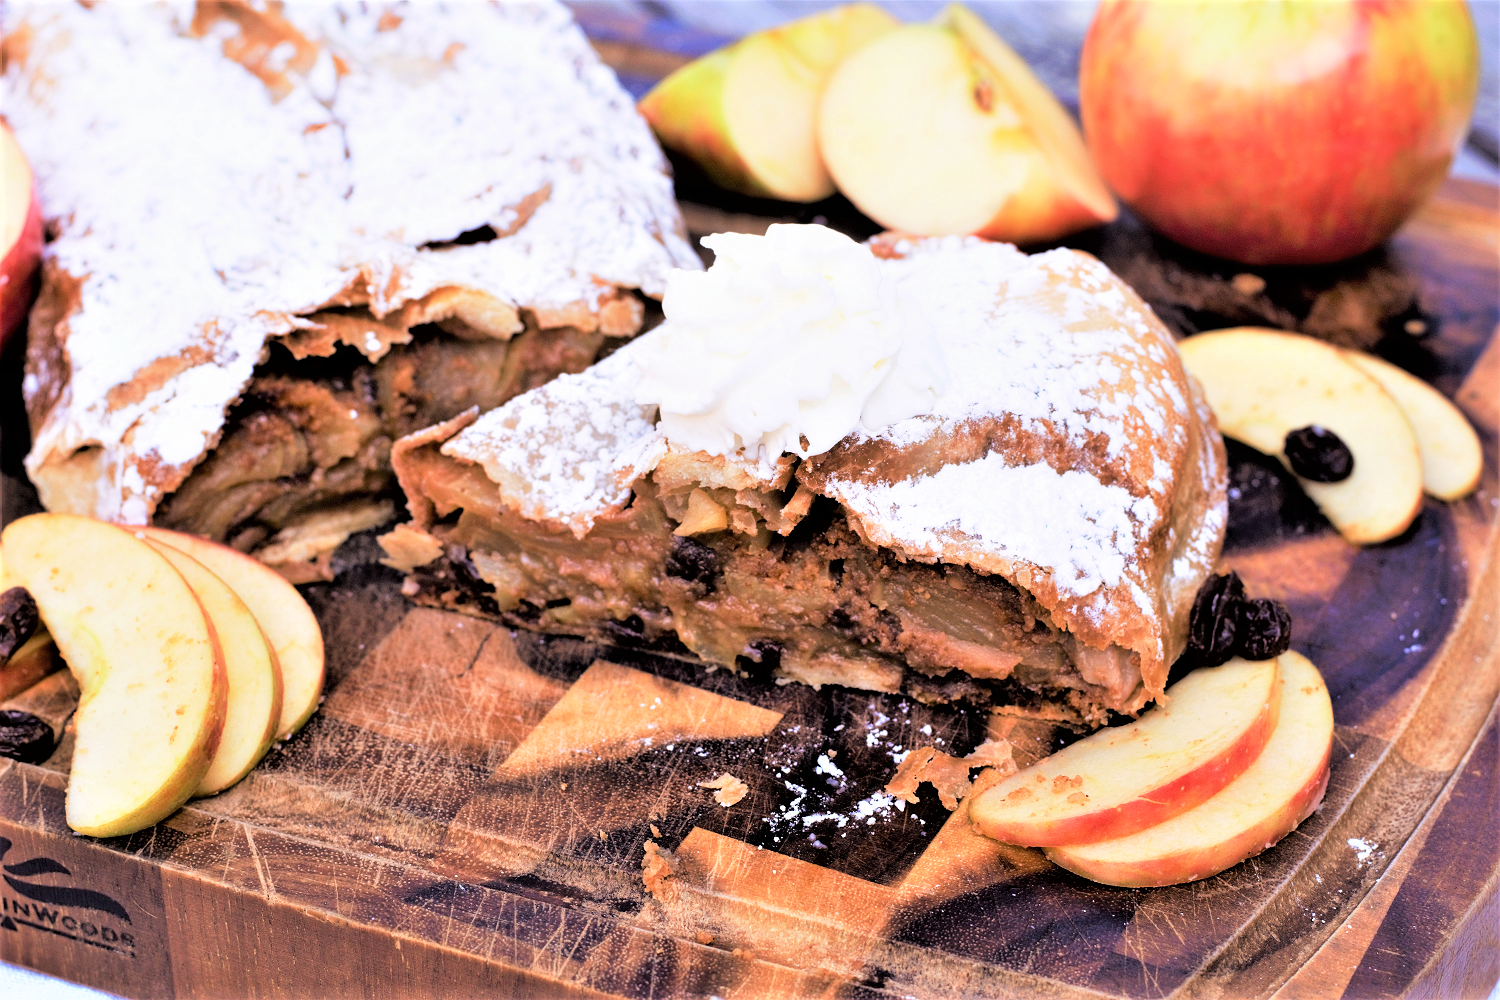 Sweet, flaky apftelstrudel with thinly sliced apples, rum-soaked raisins, & sugary toasted breadcrumbs is the very best way to celebrate Oktoberfest!